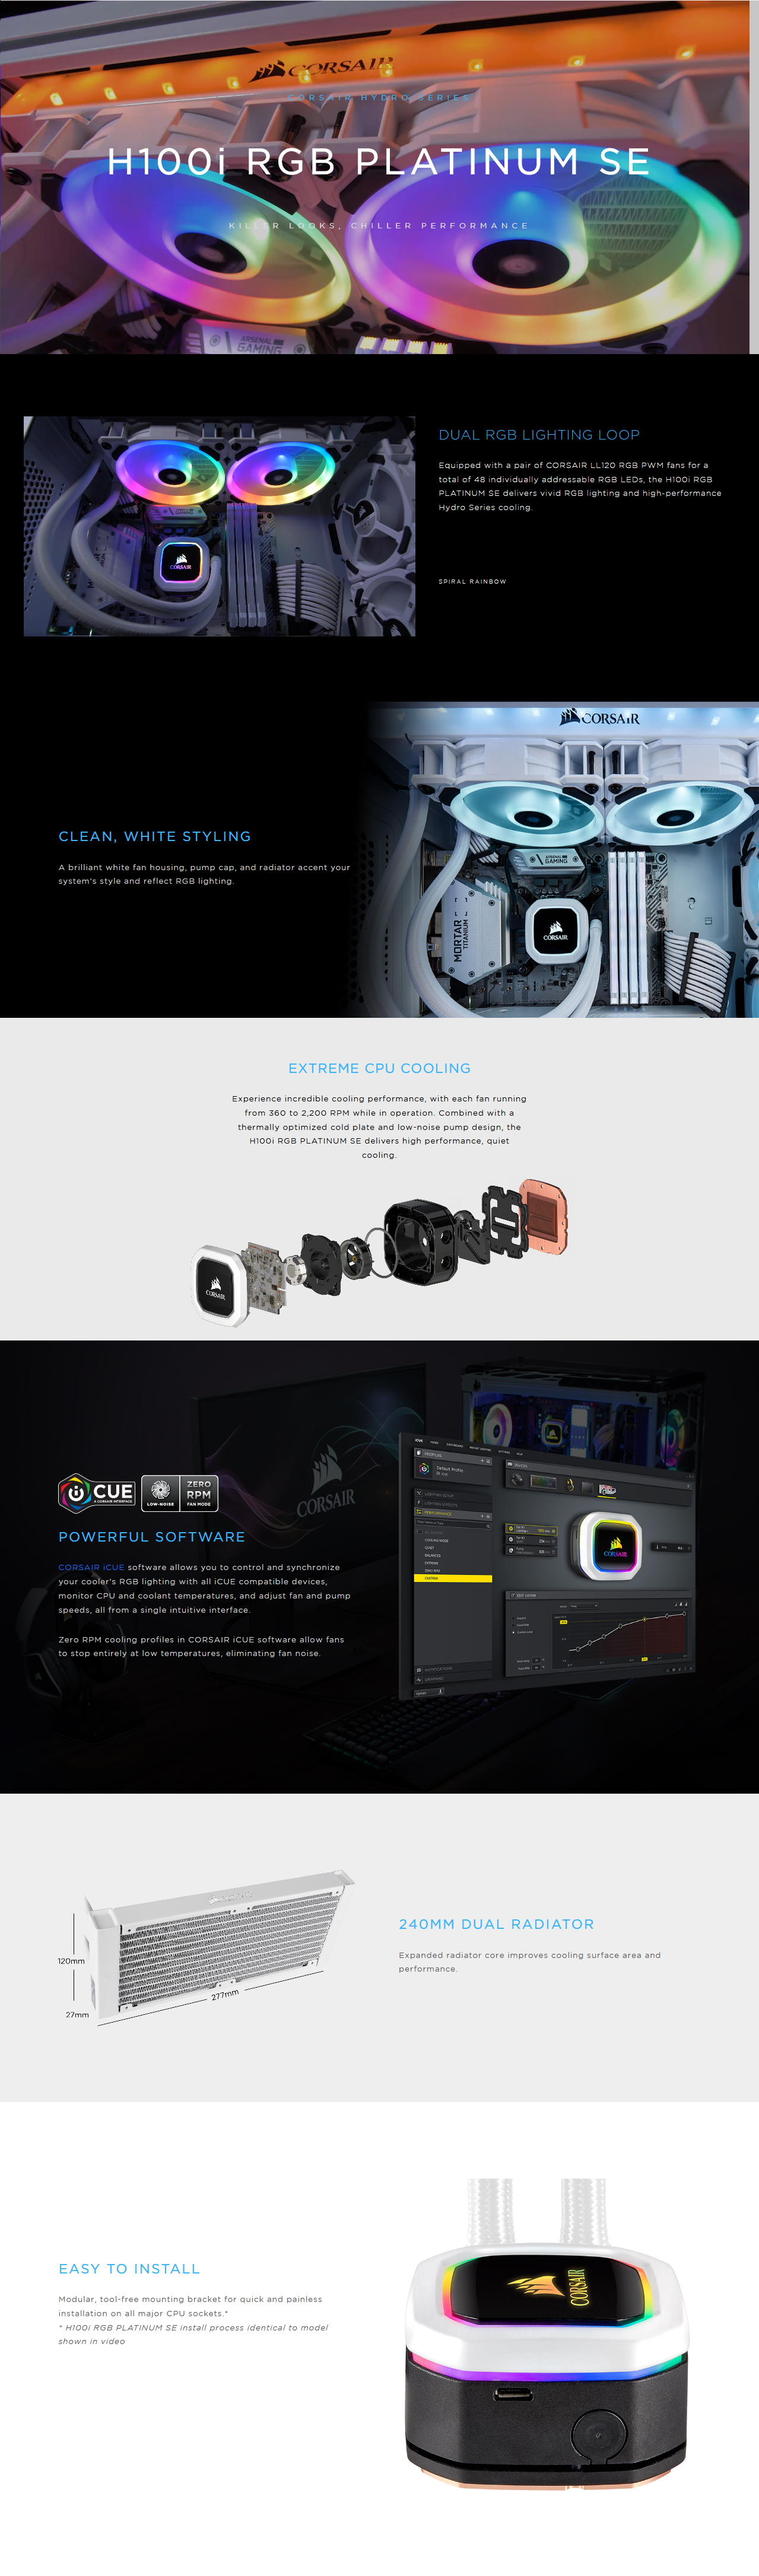 A large marketing image providing additional information about the product Corsair Hydro H100i RGB Platinum SE White 240mm AIO Liquid CPU Cooler - Additional alt info not provided